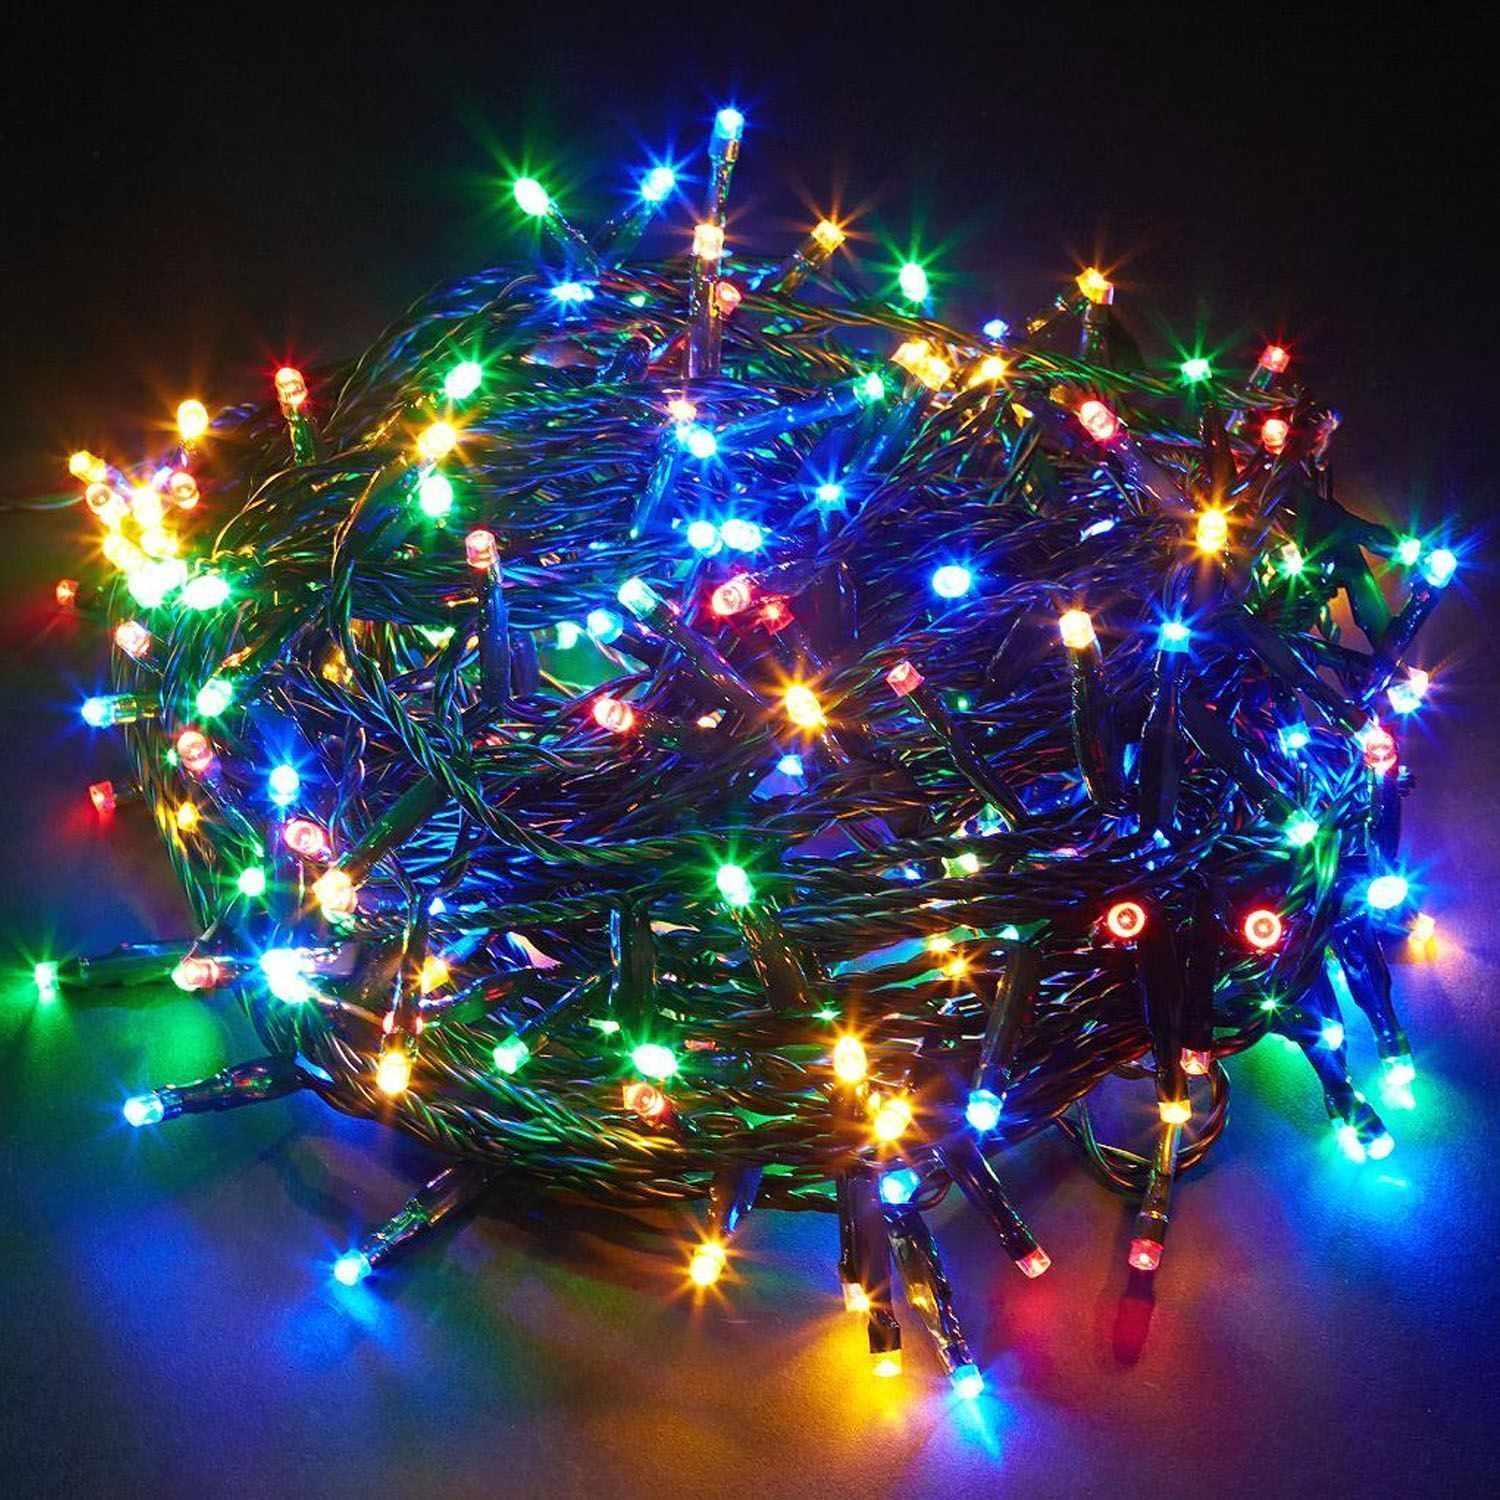 Outdoor String Lights Mains: LEDs String Multicolour Fairy Lights Outdoor Mains Plug